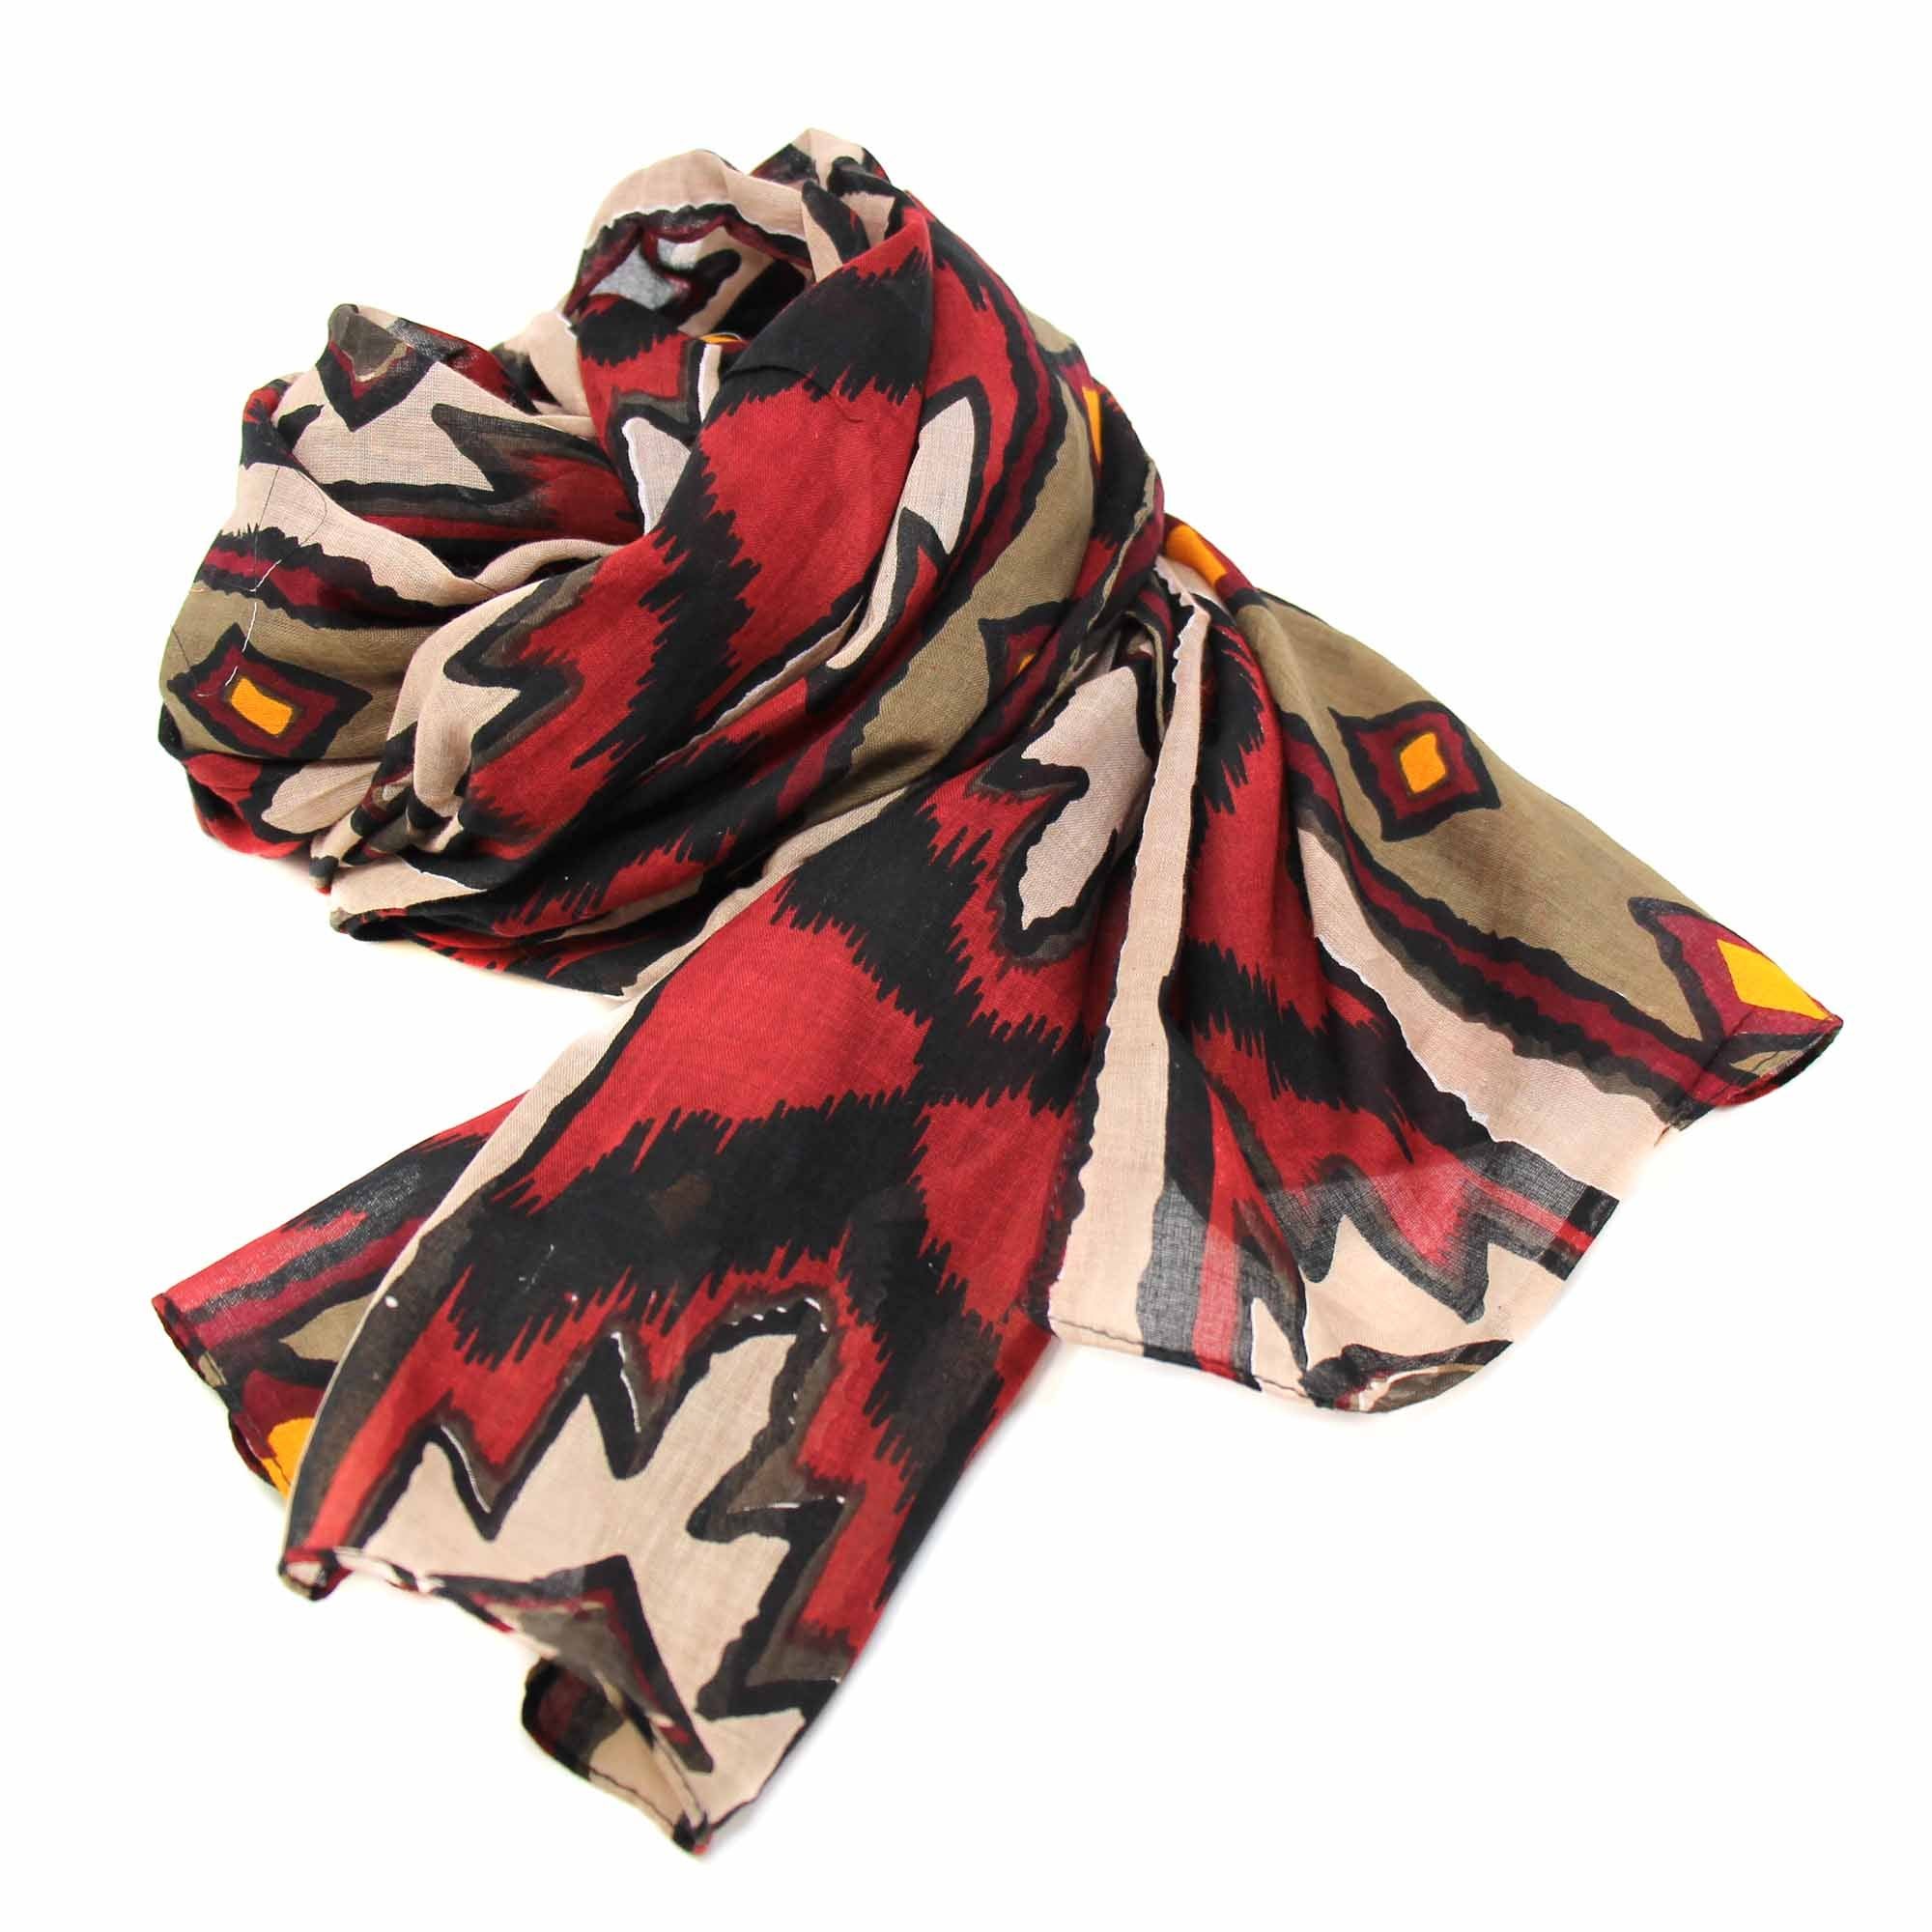 Printed Ikat Diamond Design Cotton Scarf